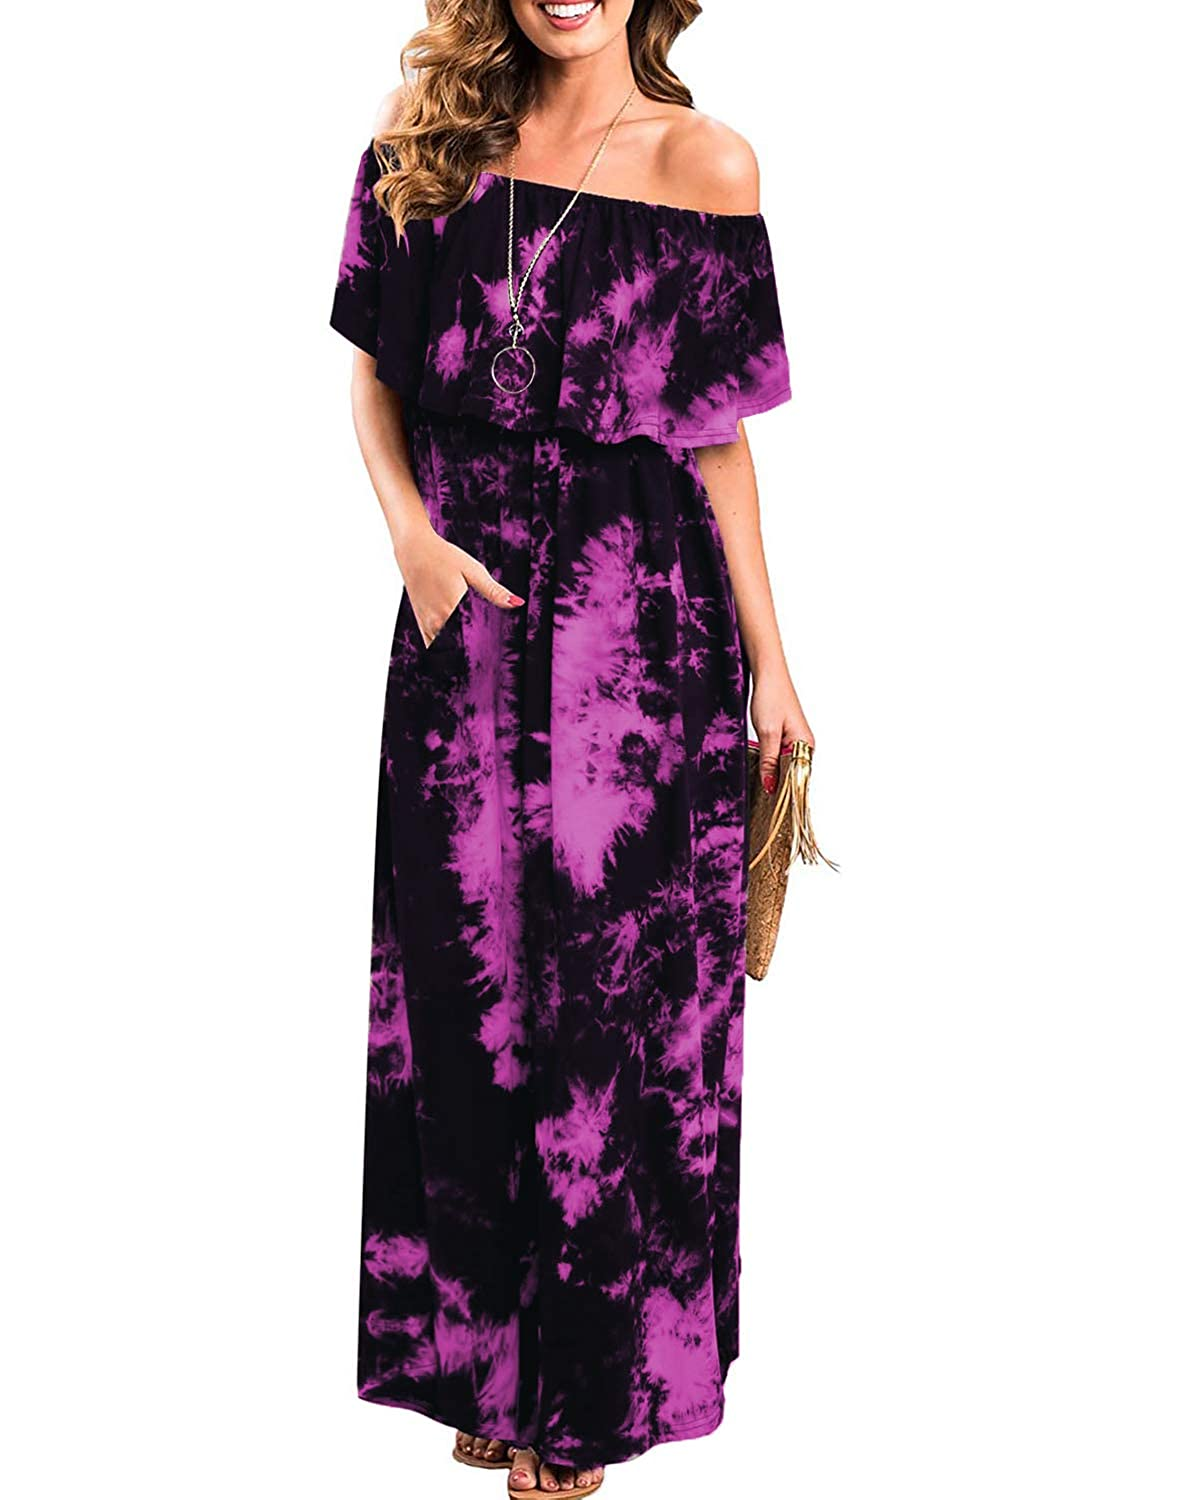 BIUBIU Women Off The Shoulder Ruffle Party Dresses Tie Dye Split Maxi Long Dress